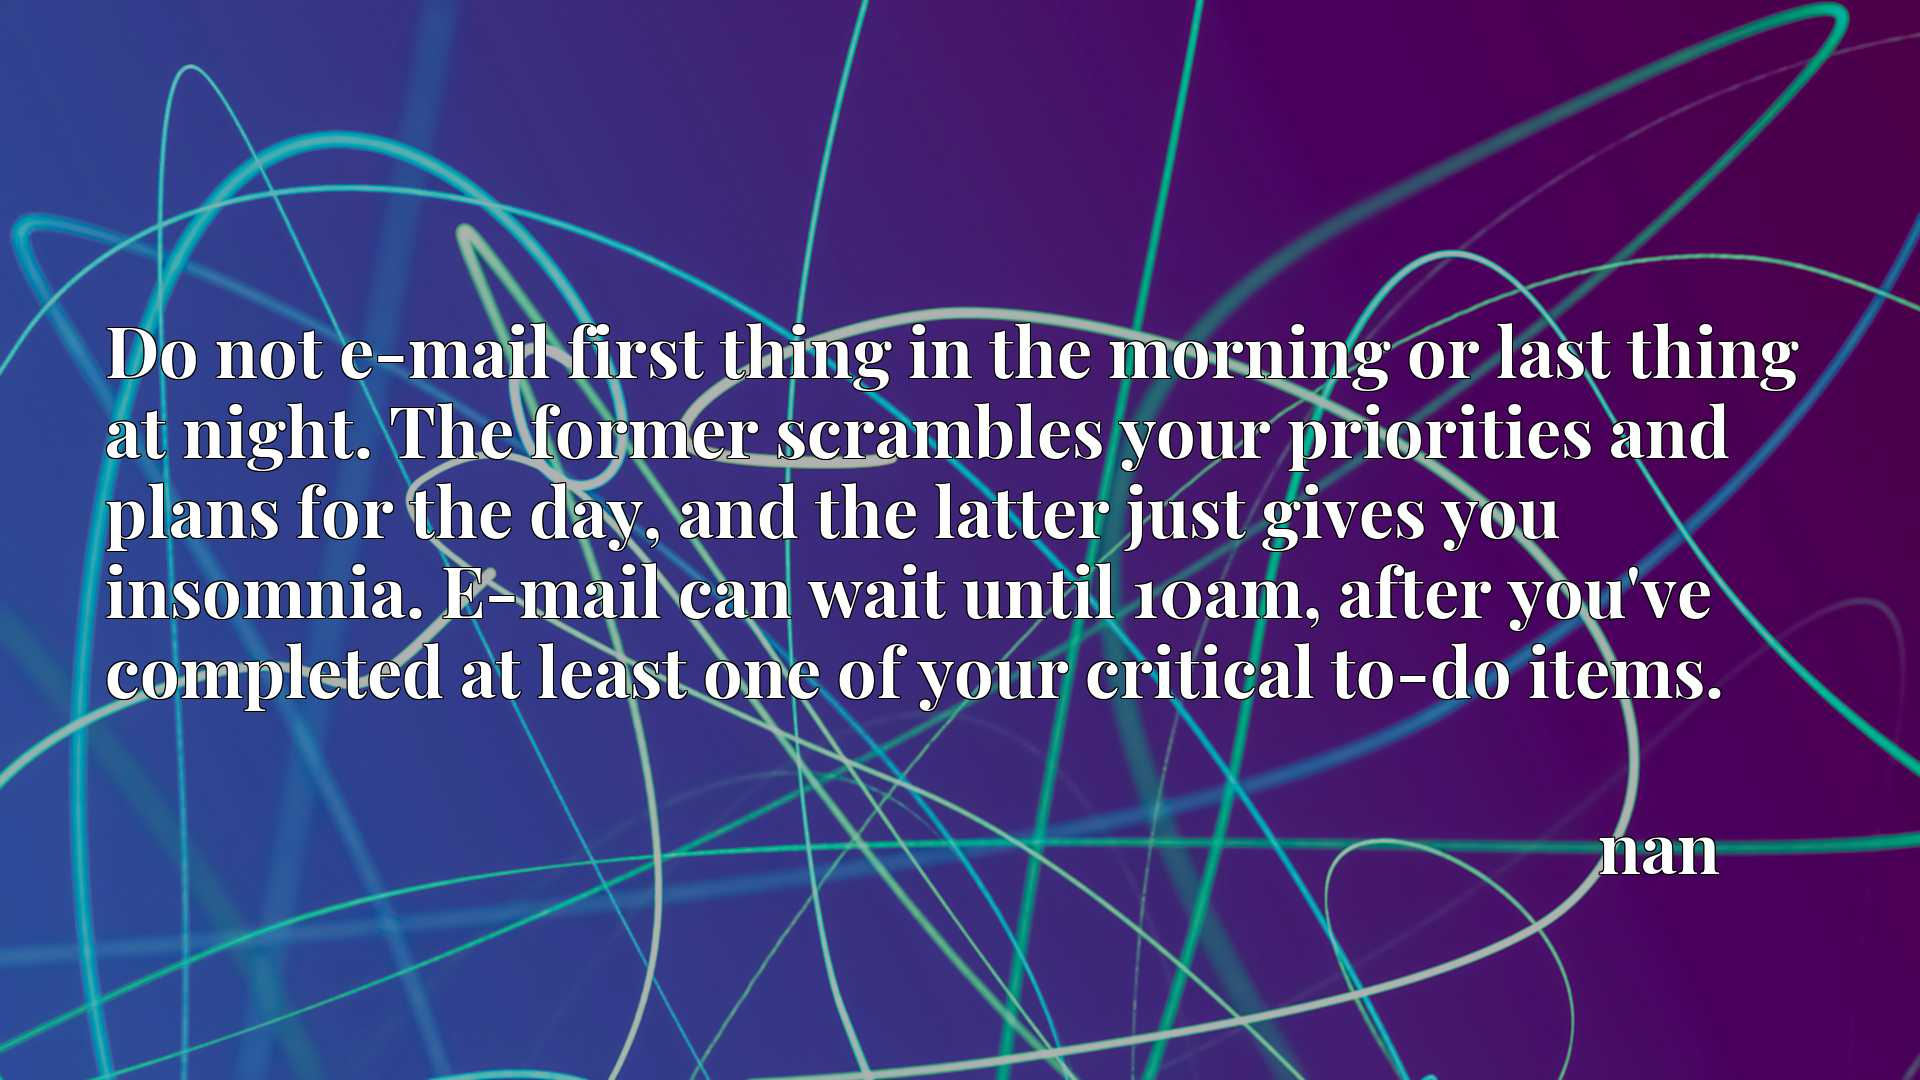 Do not e-mail first thing in the morning or last thing at night. The former scrambles your priorities and plans for the day, and the latter just gives you insomnia. E-mail can wait until 10am, after you've completed at least one of your critical to-do items.